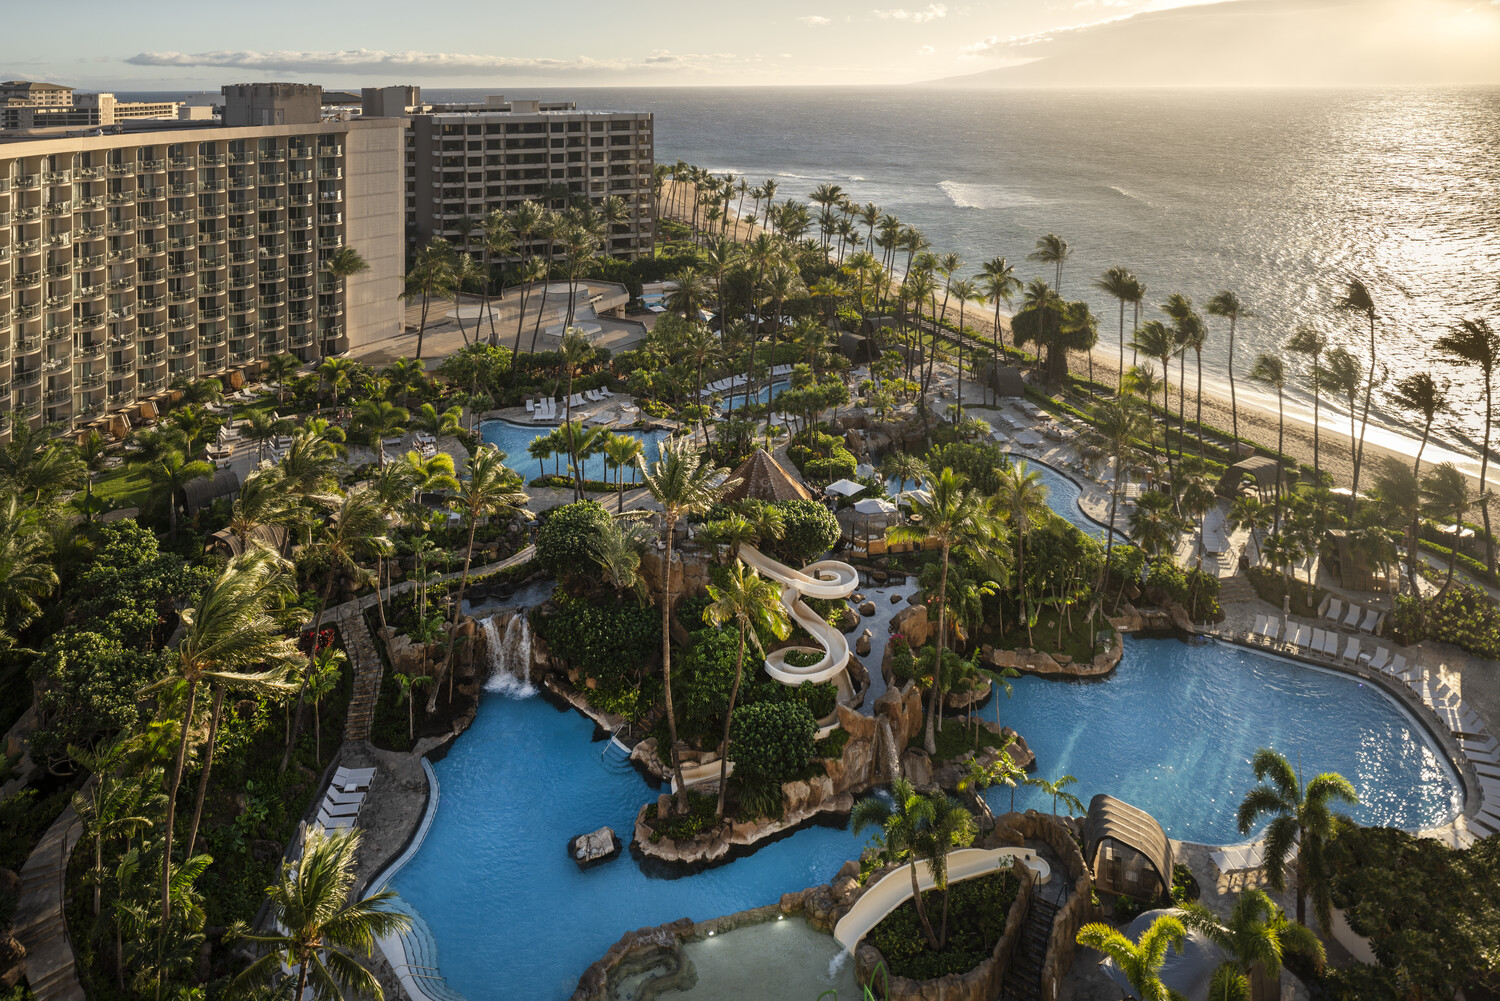 The Westin Maui : Why guests love it?